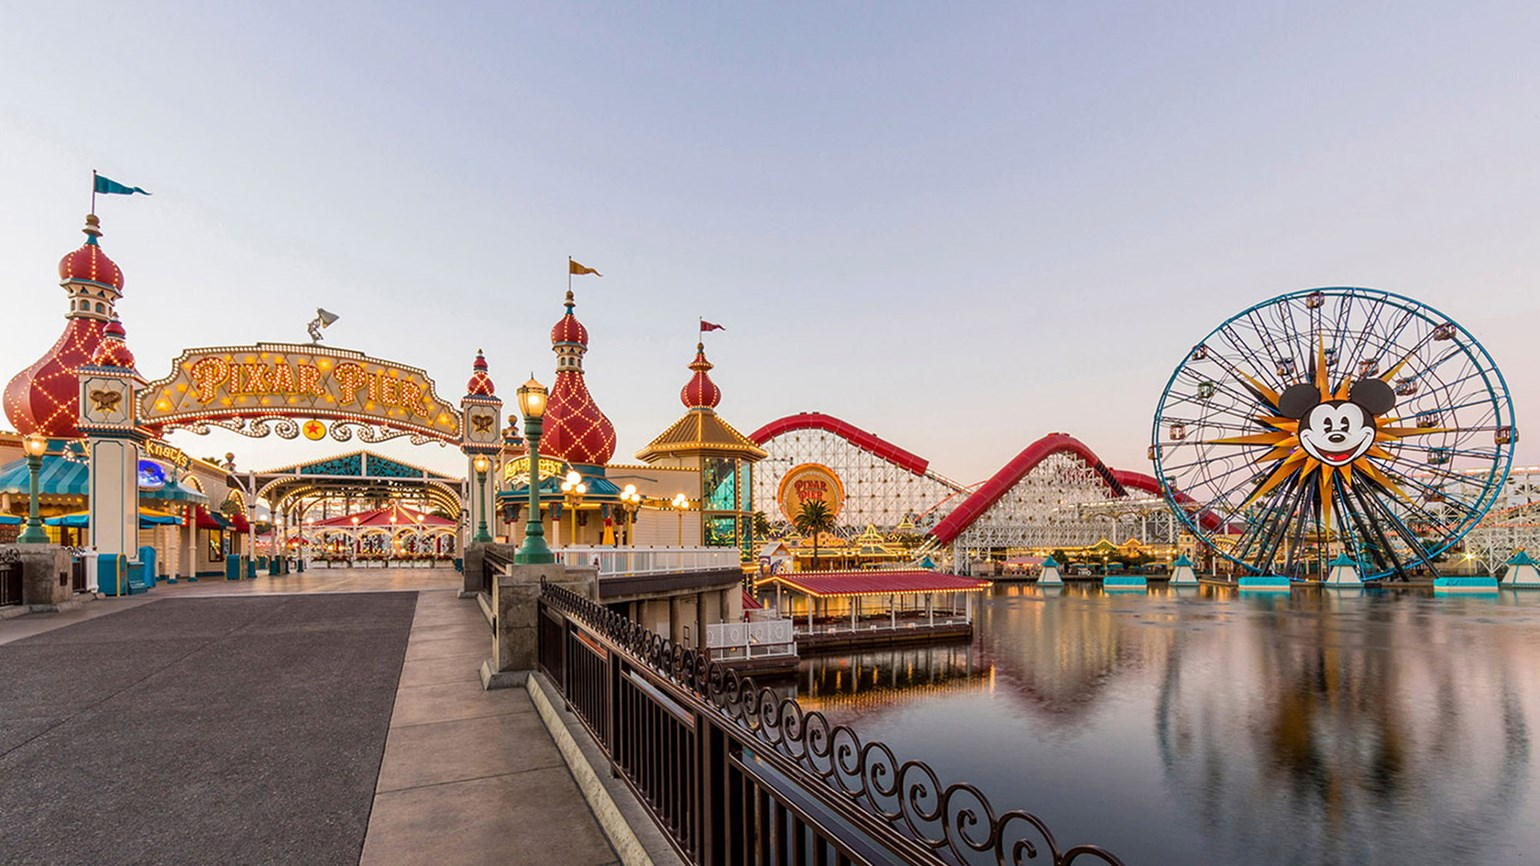 Disneyland does away with Annual Passport program